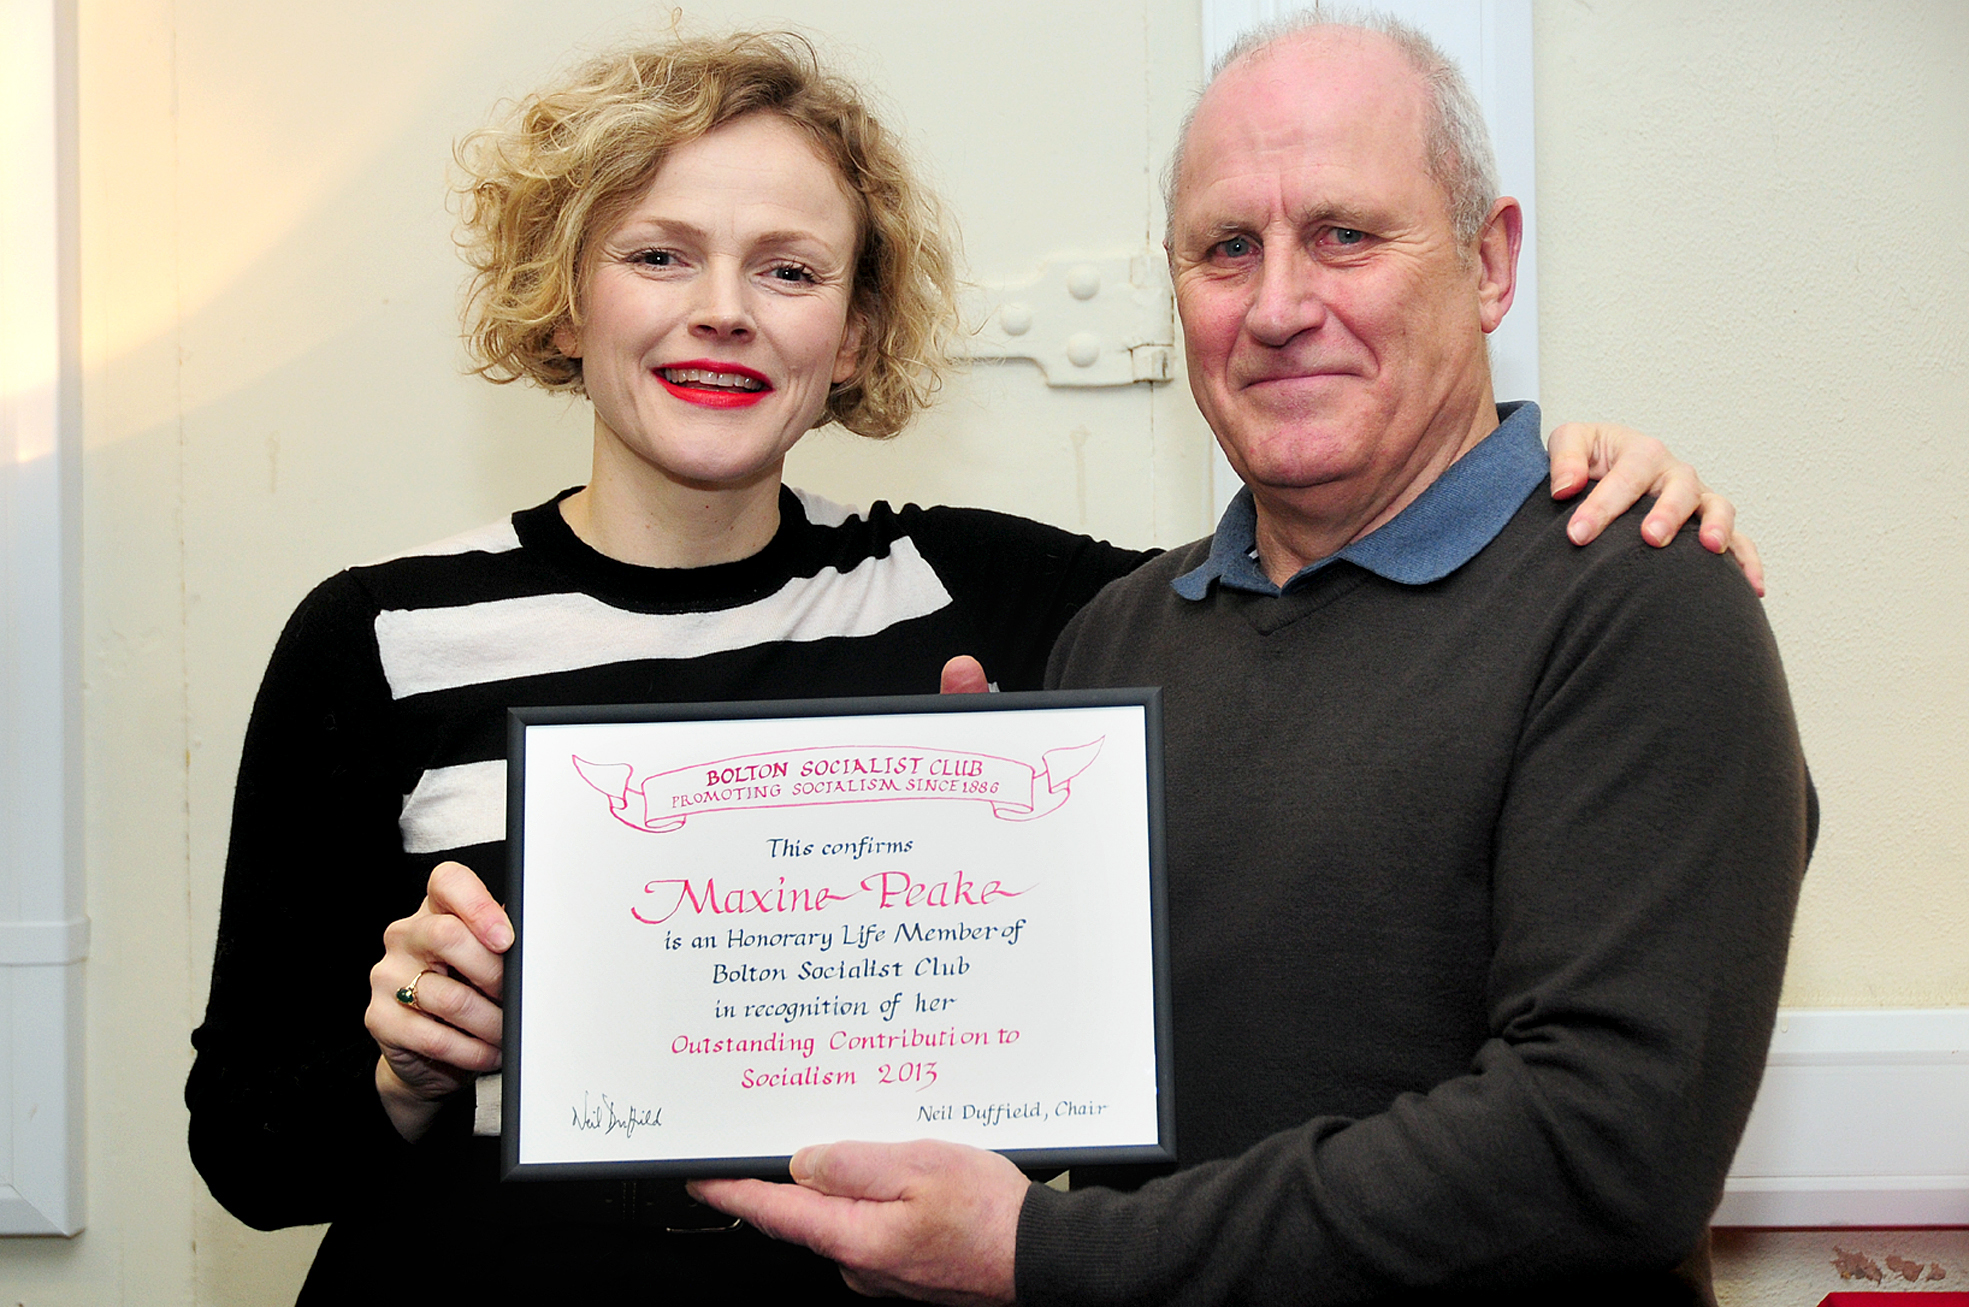 UPDATED: Maxine Peake receives award from Bolton Socialist Club